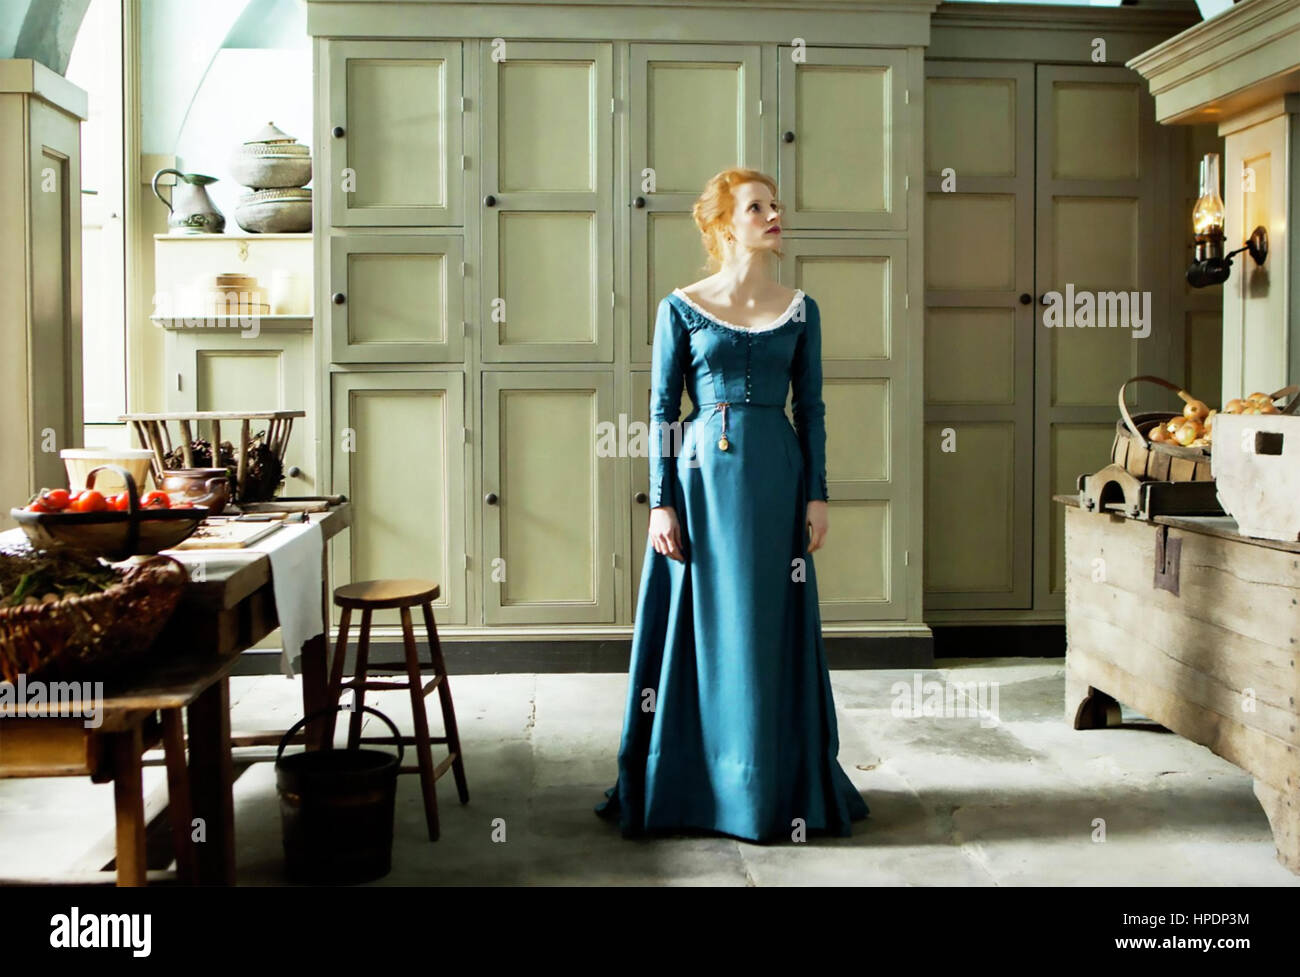 MISS JULIE 2014 Maipo Film production with Jessica Chastain Stock Photo